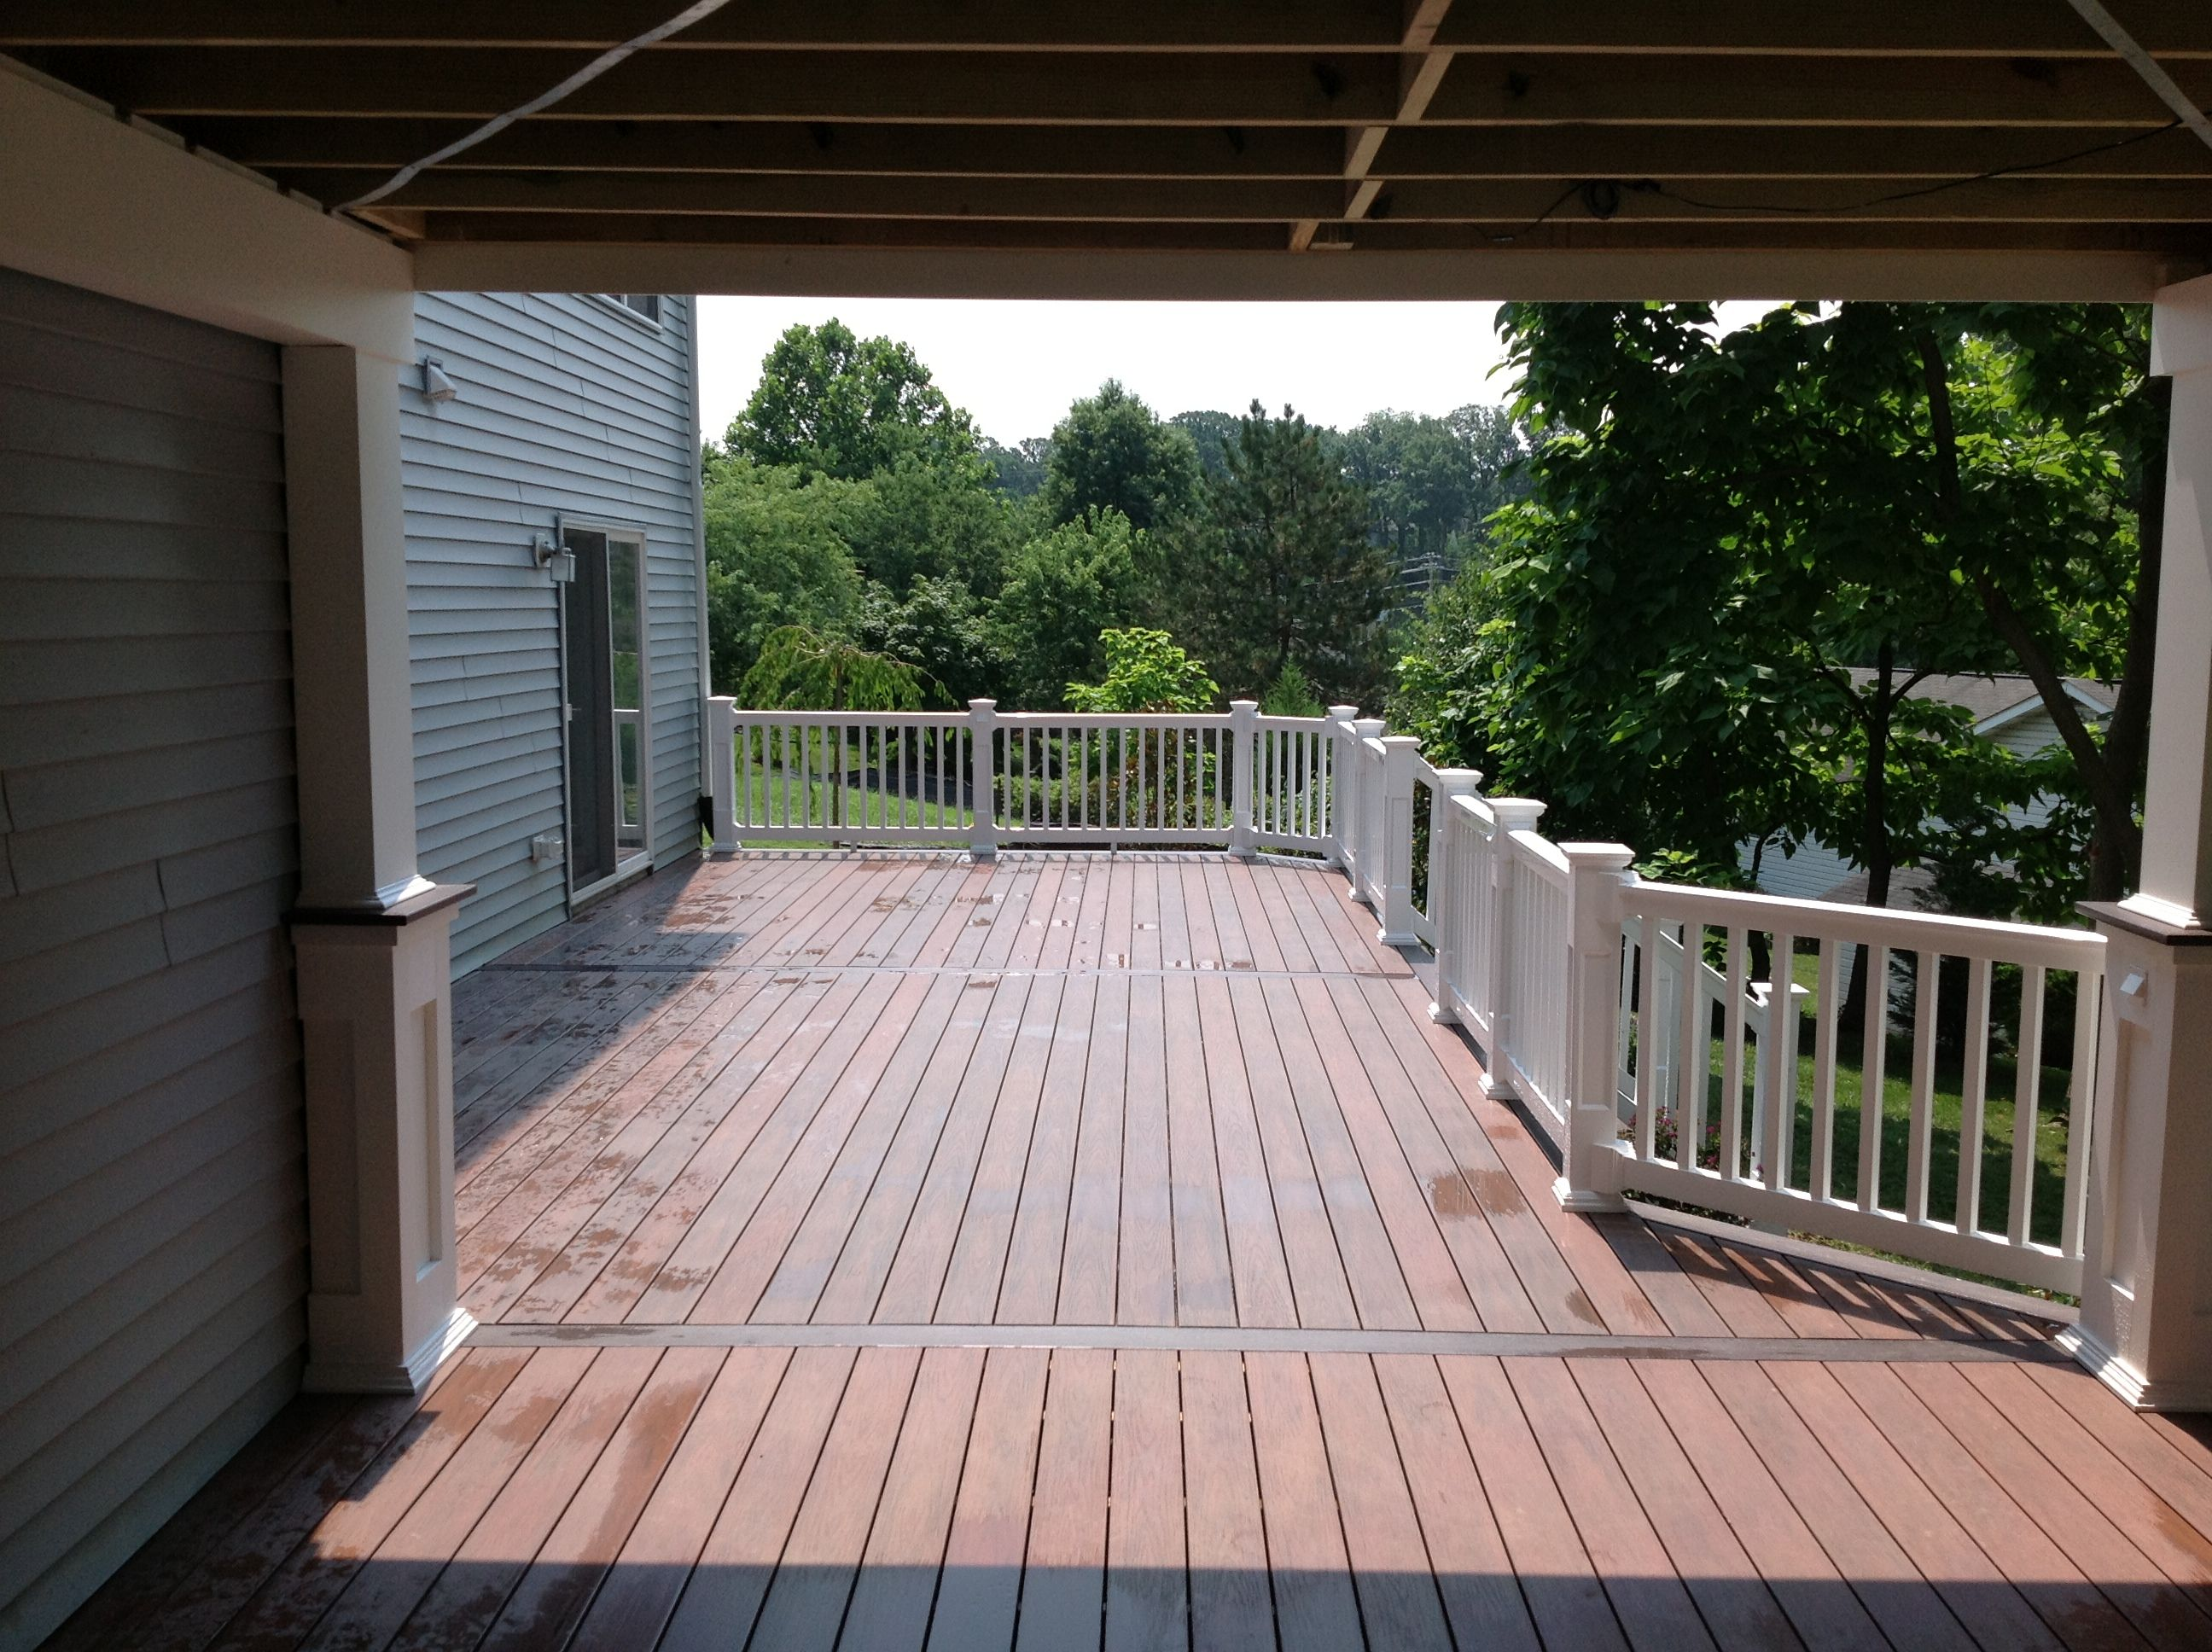 Vinyl deck with wolf pvc decking using amberwood flooring with rosewood border and white pvc railing